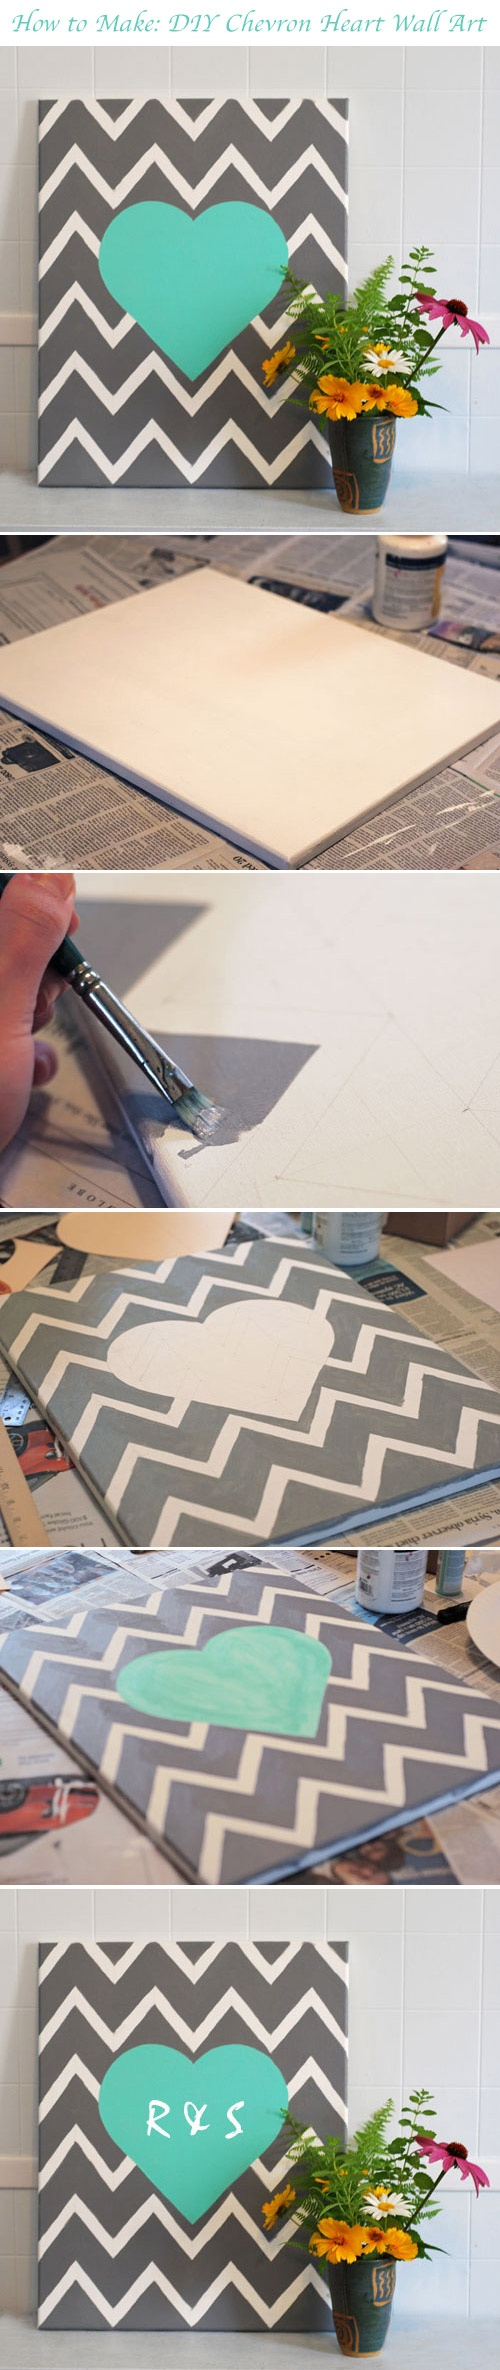 20.DIY CHEVRON HEART WALL ART